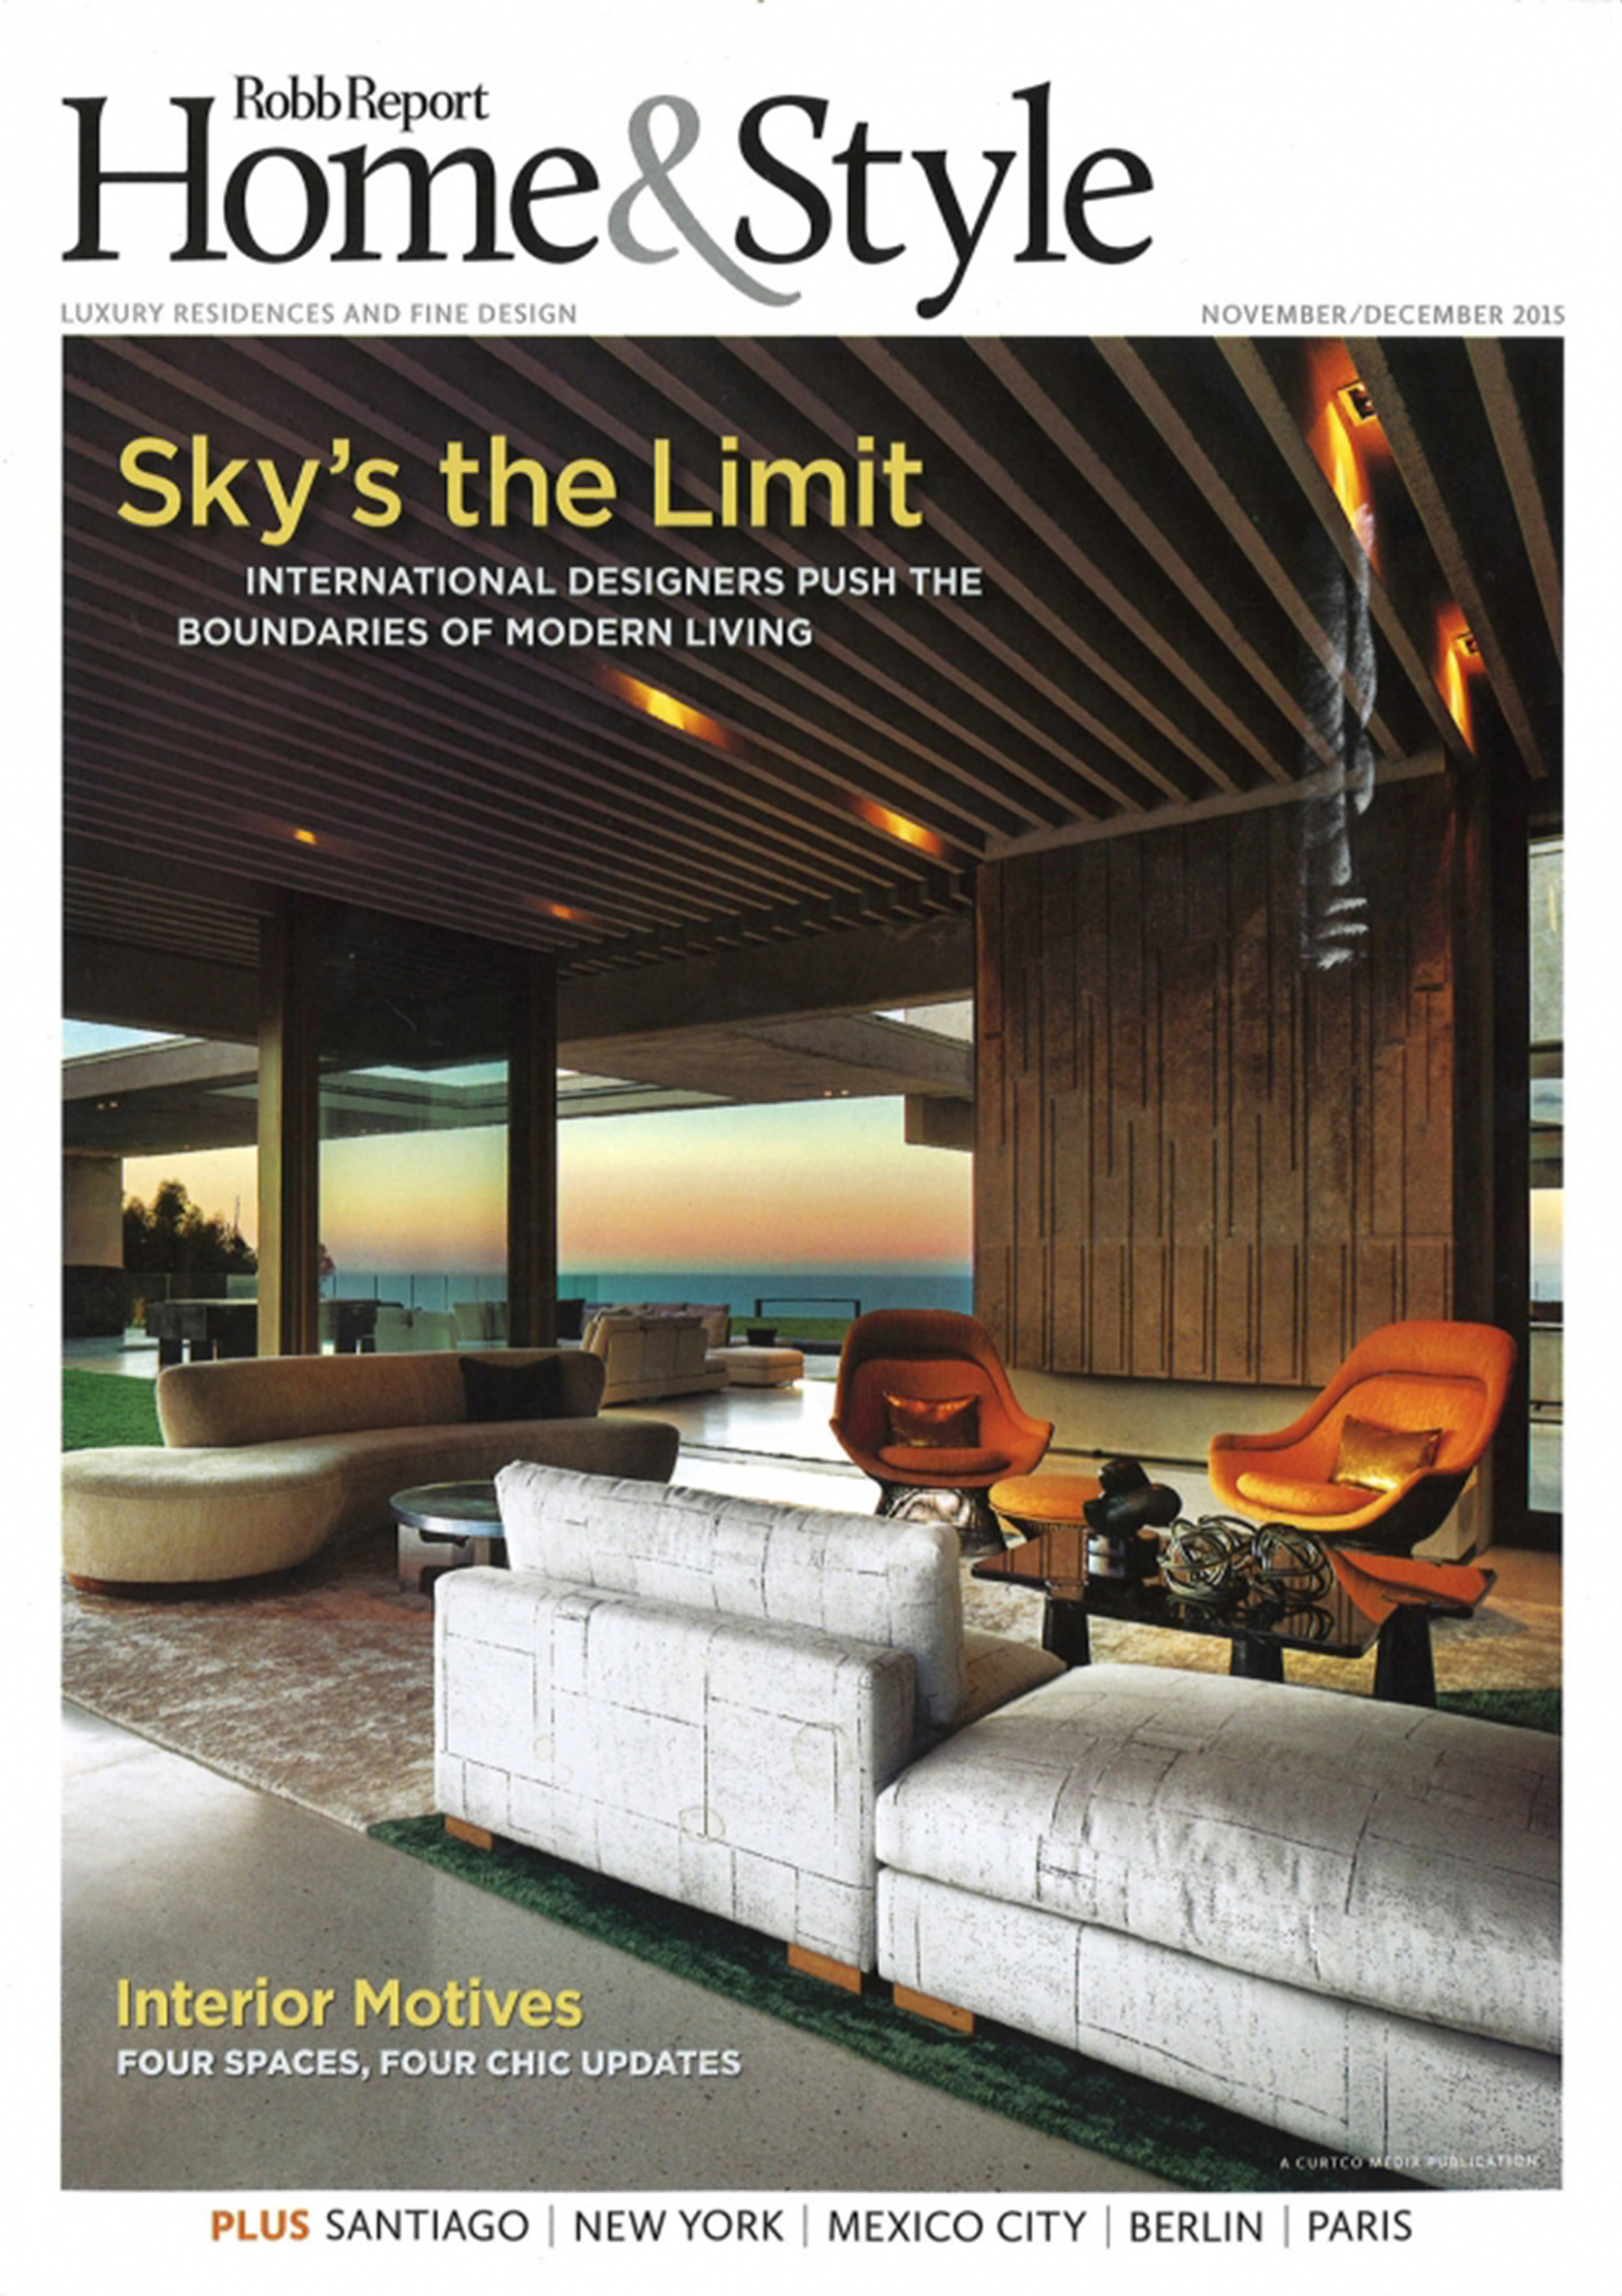 THE KID in THE ROBB REPORT USA November 2015 cover page def 150.jpg